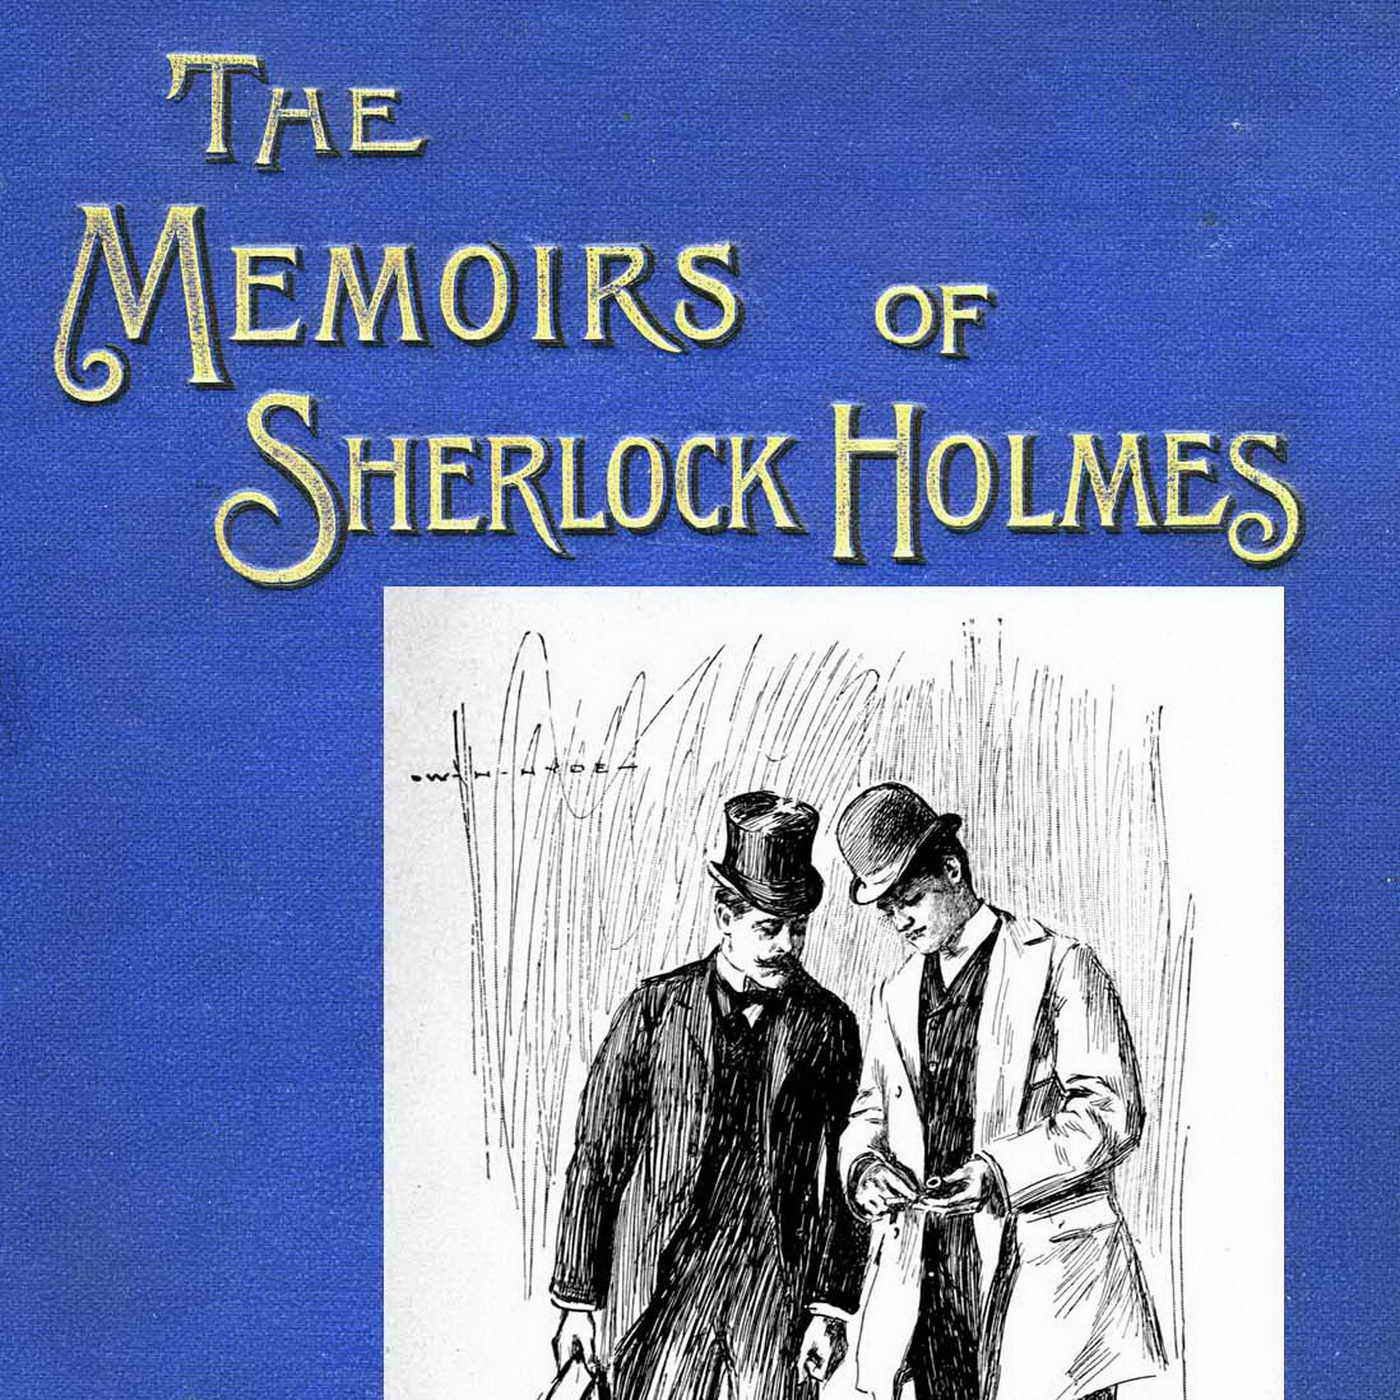 The Memoris of Sherlock Holmes by Sir Arthus Conan Doyle Audiobook Podcast on Hubhopper